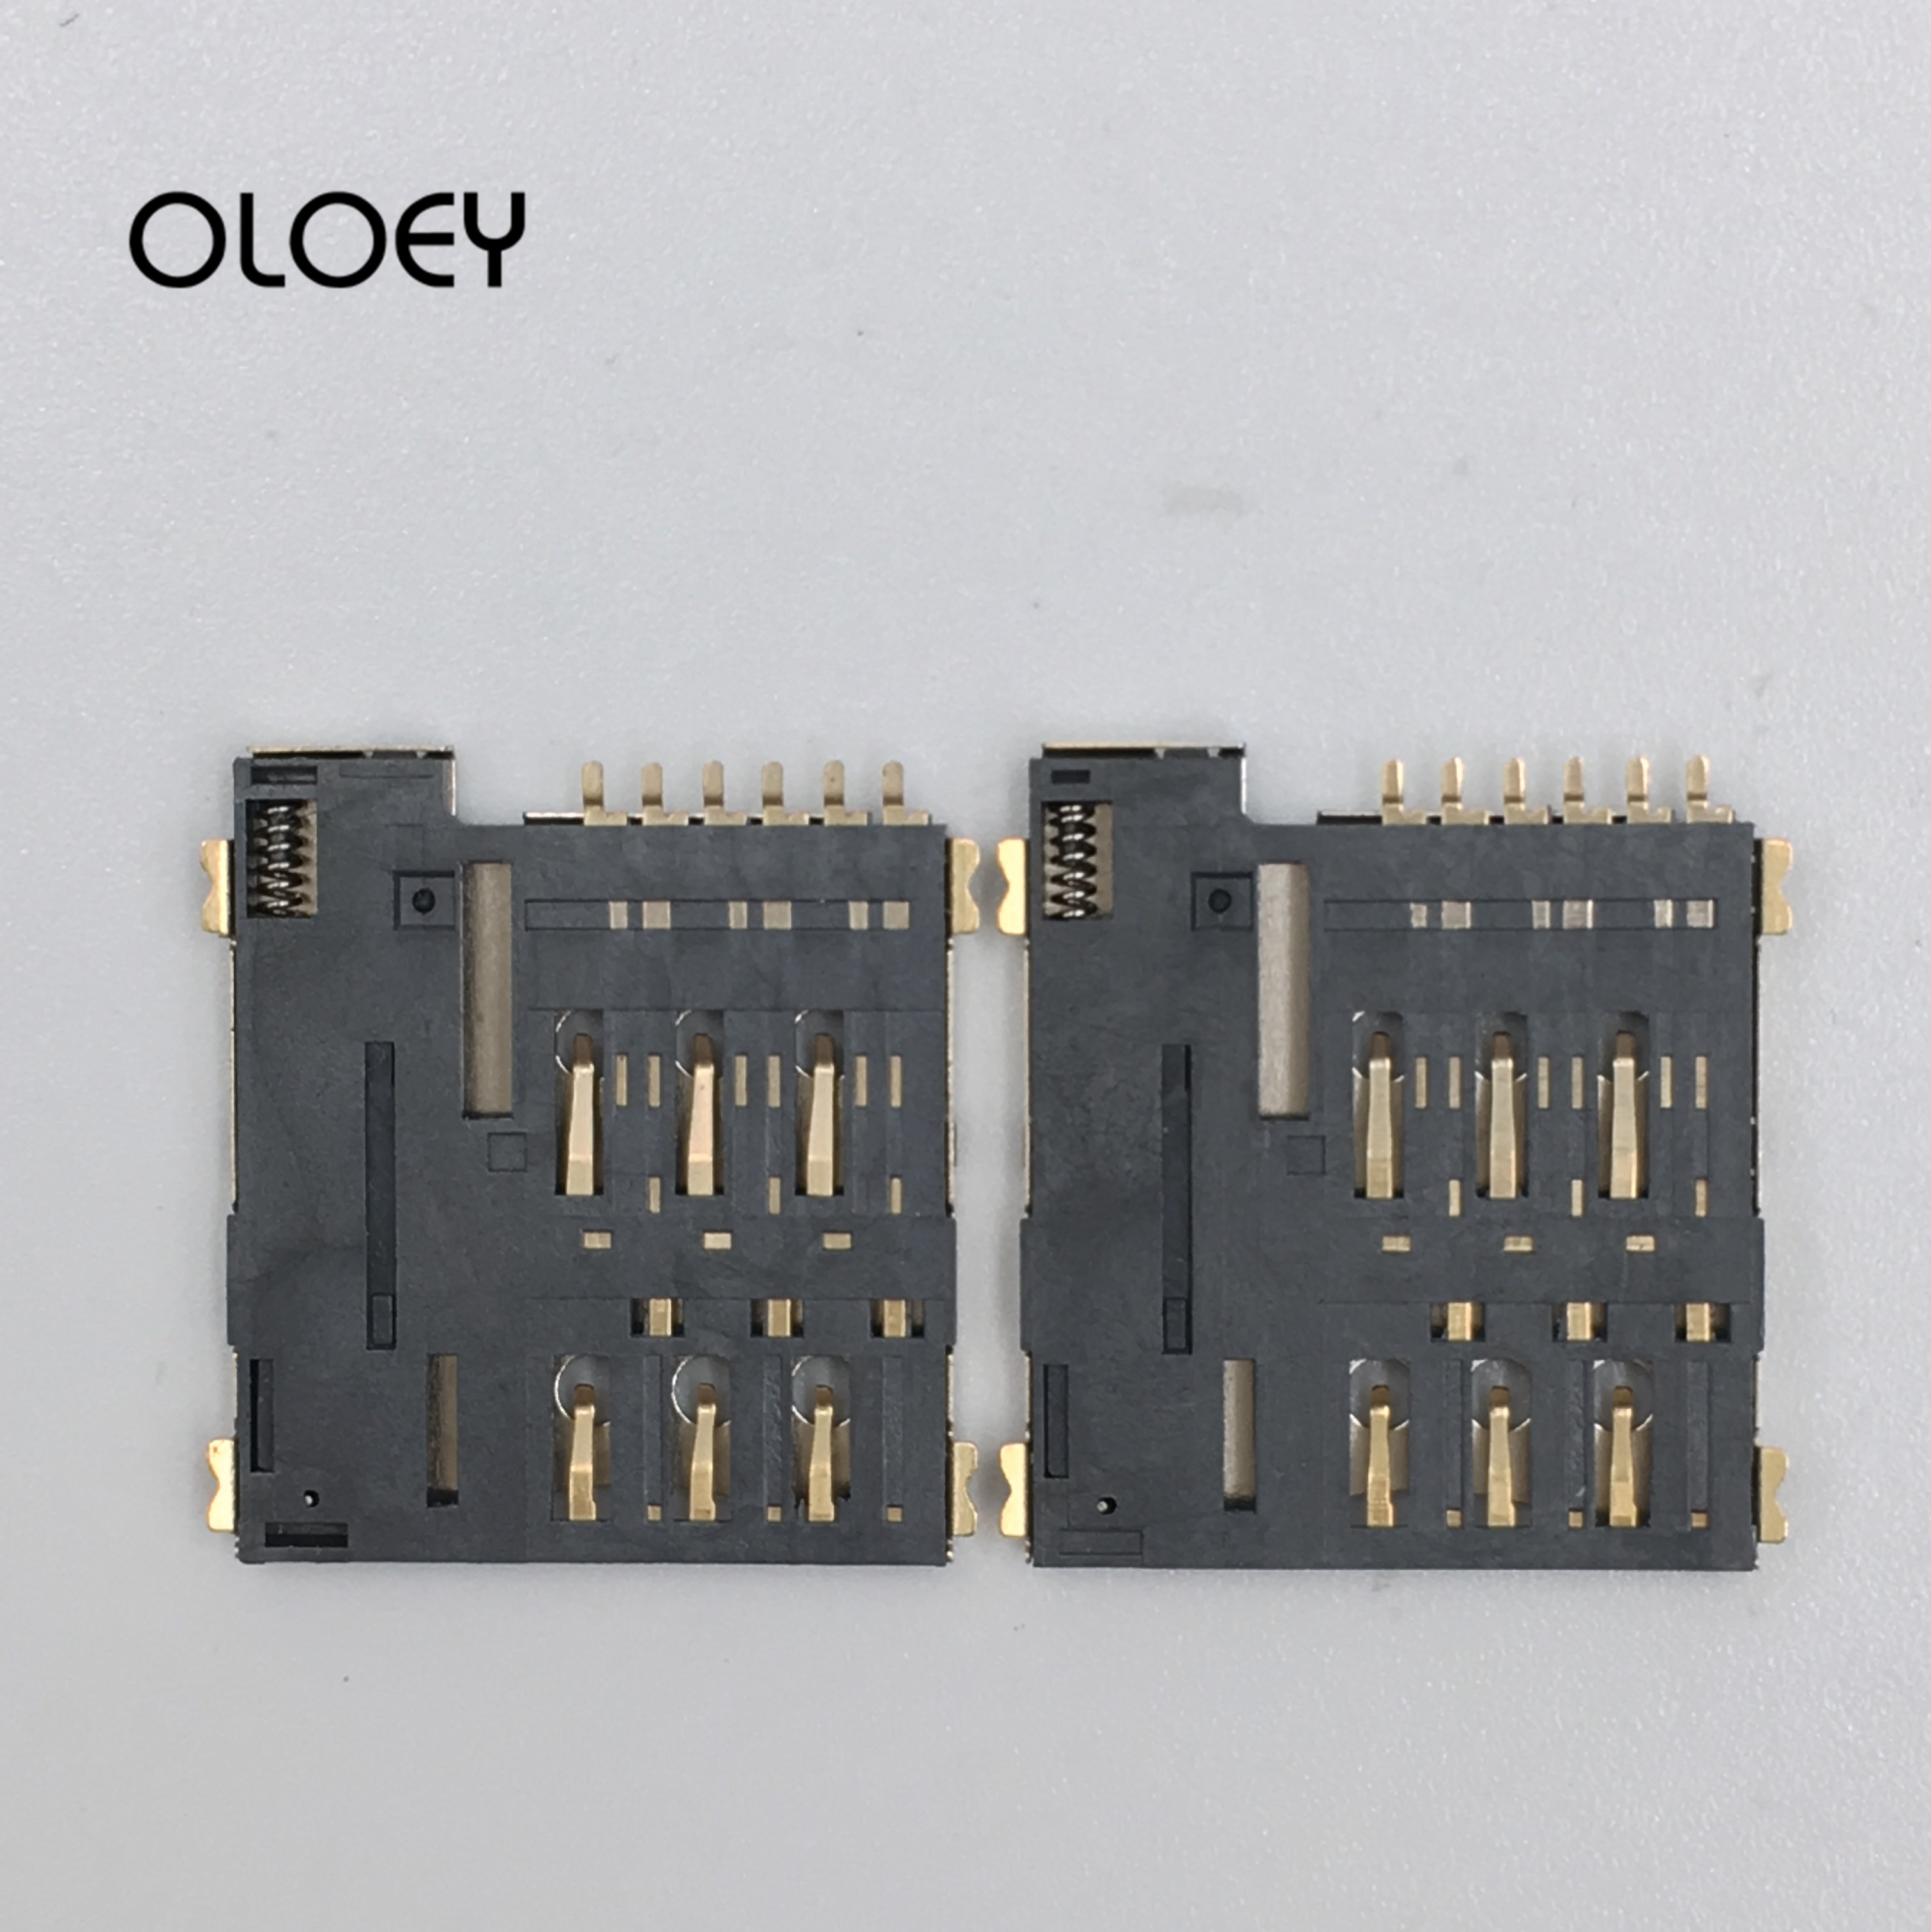 Mirco SIM Card, Automatic Pop-up, High Temperature Resistance, Reflow Soldering Can Be Used